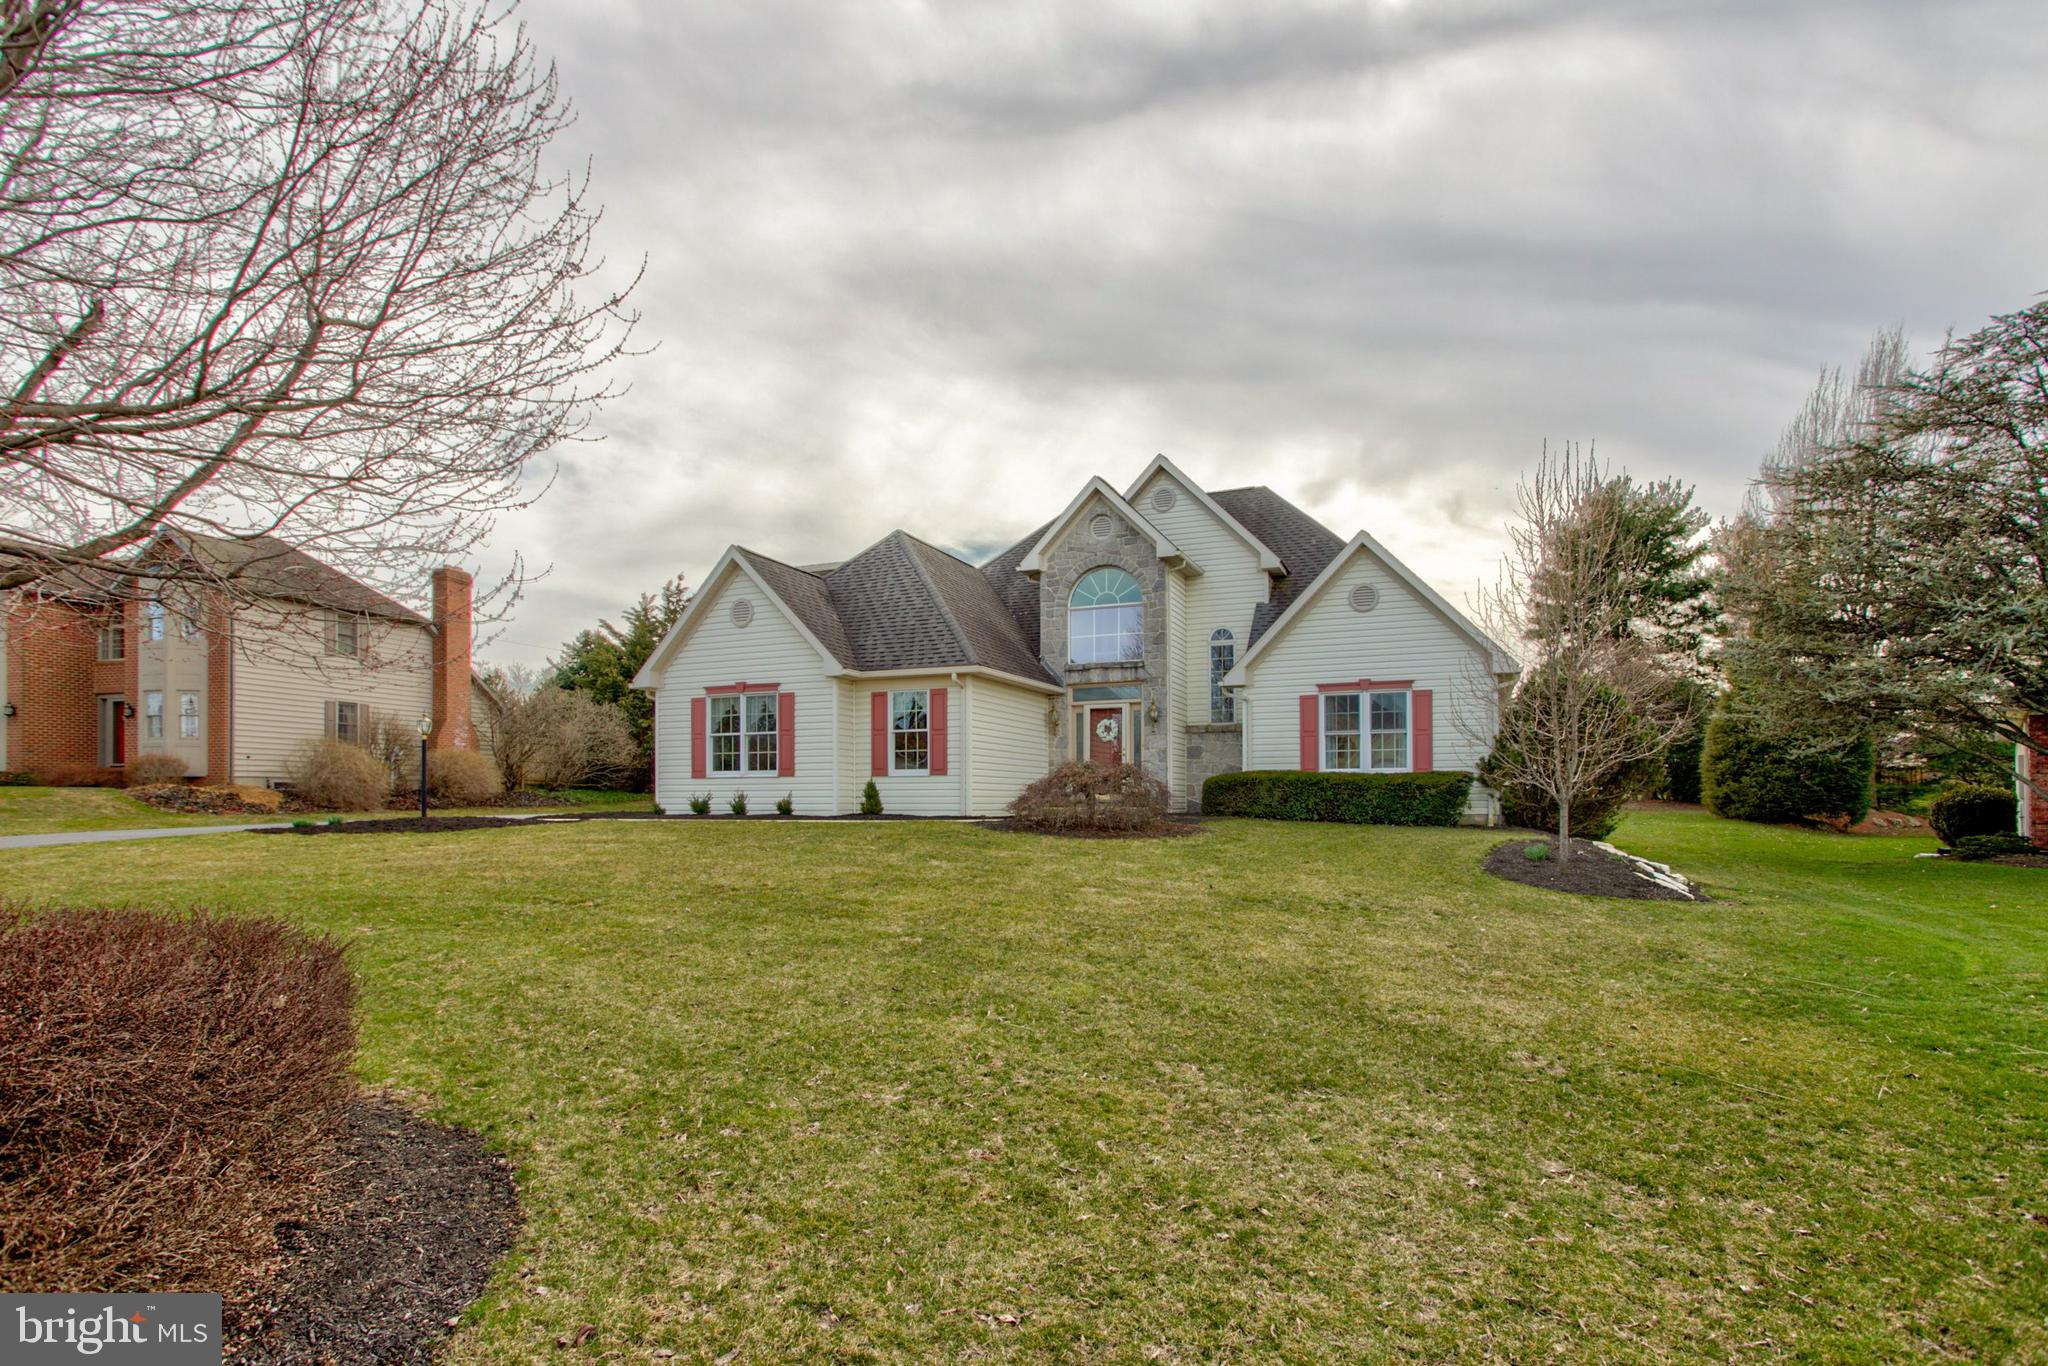 432 SPRING HOLLOW DRIVE, NEW HOLLAND, PA 17557